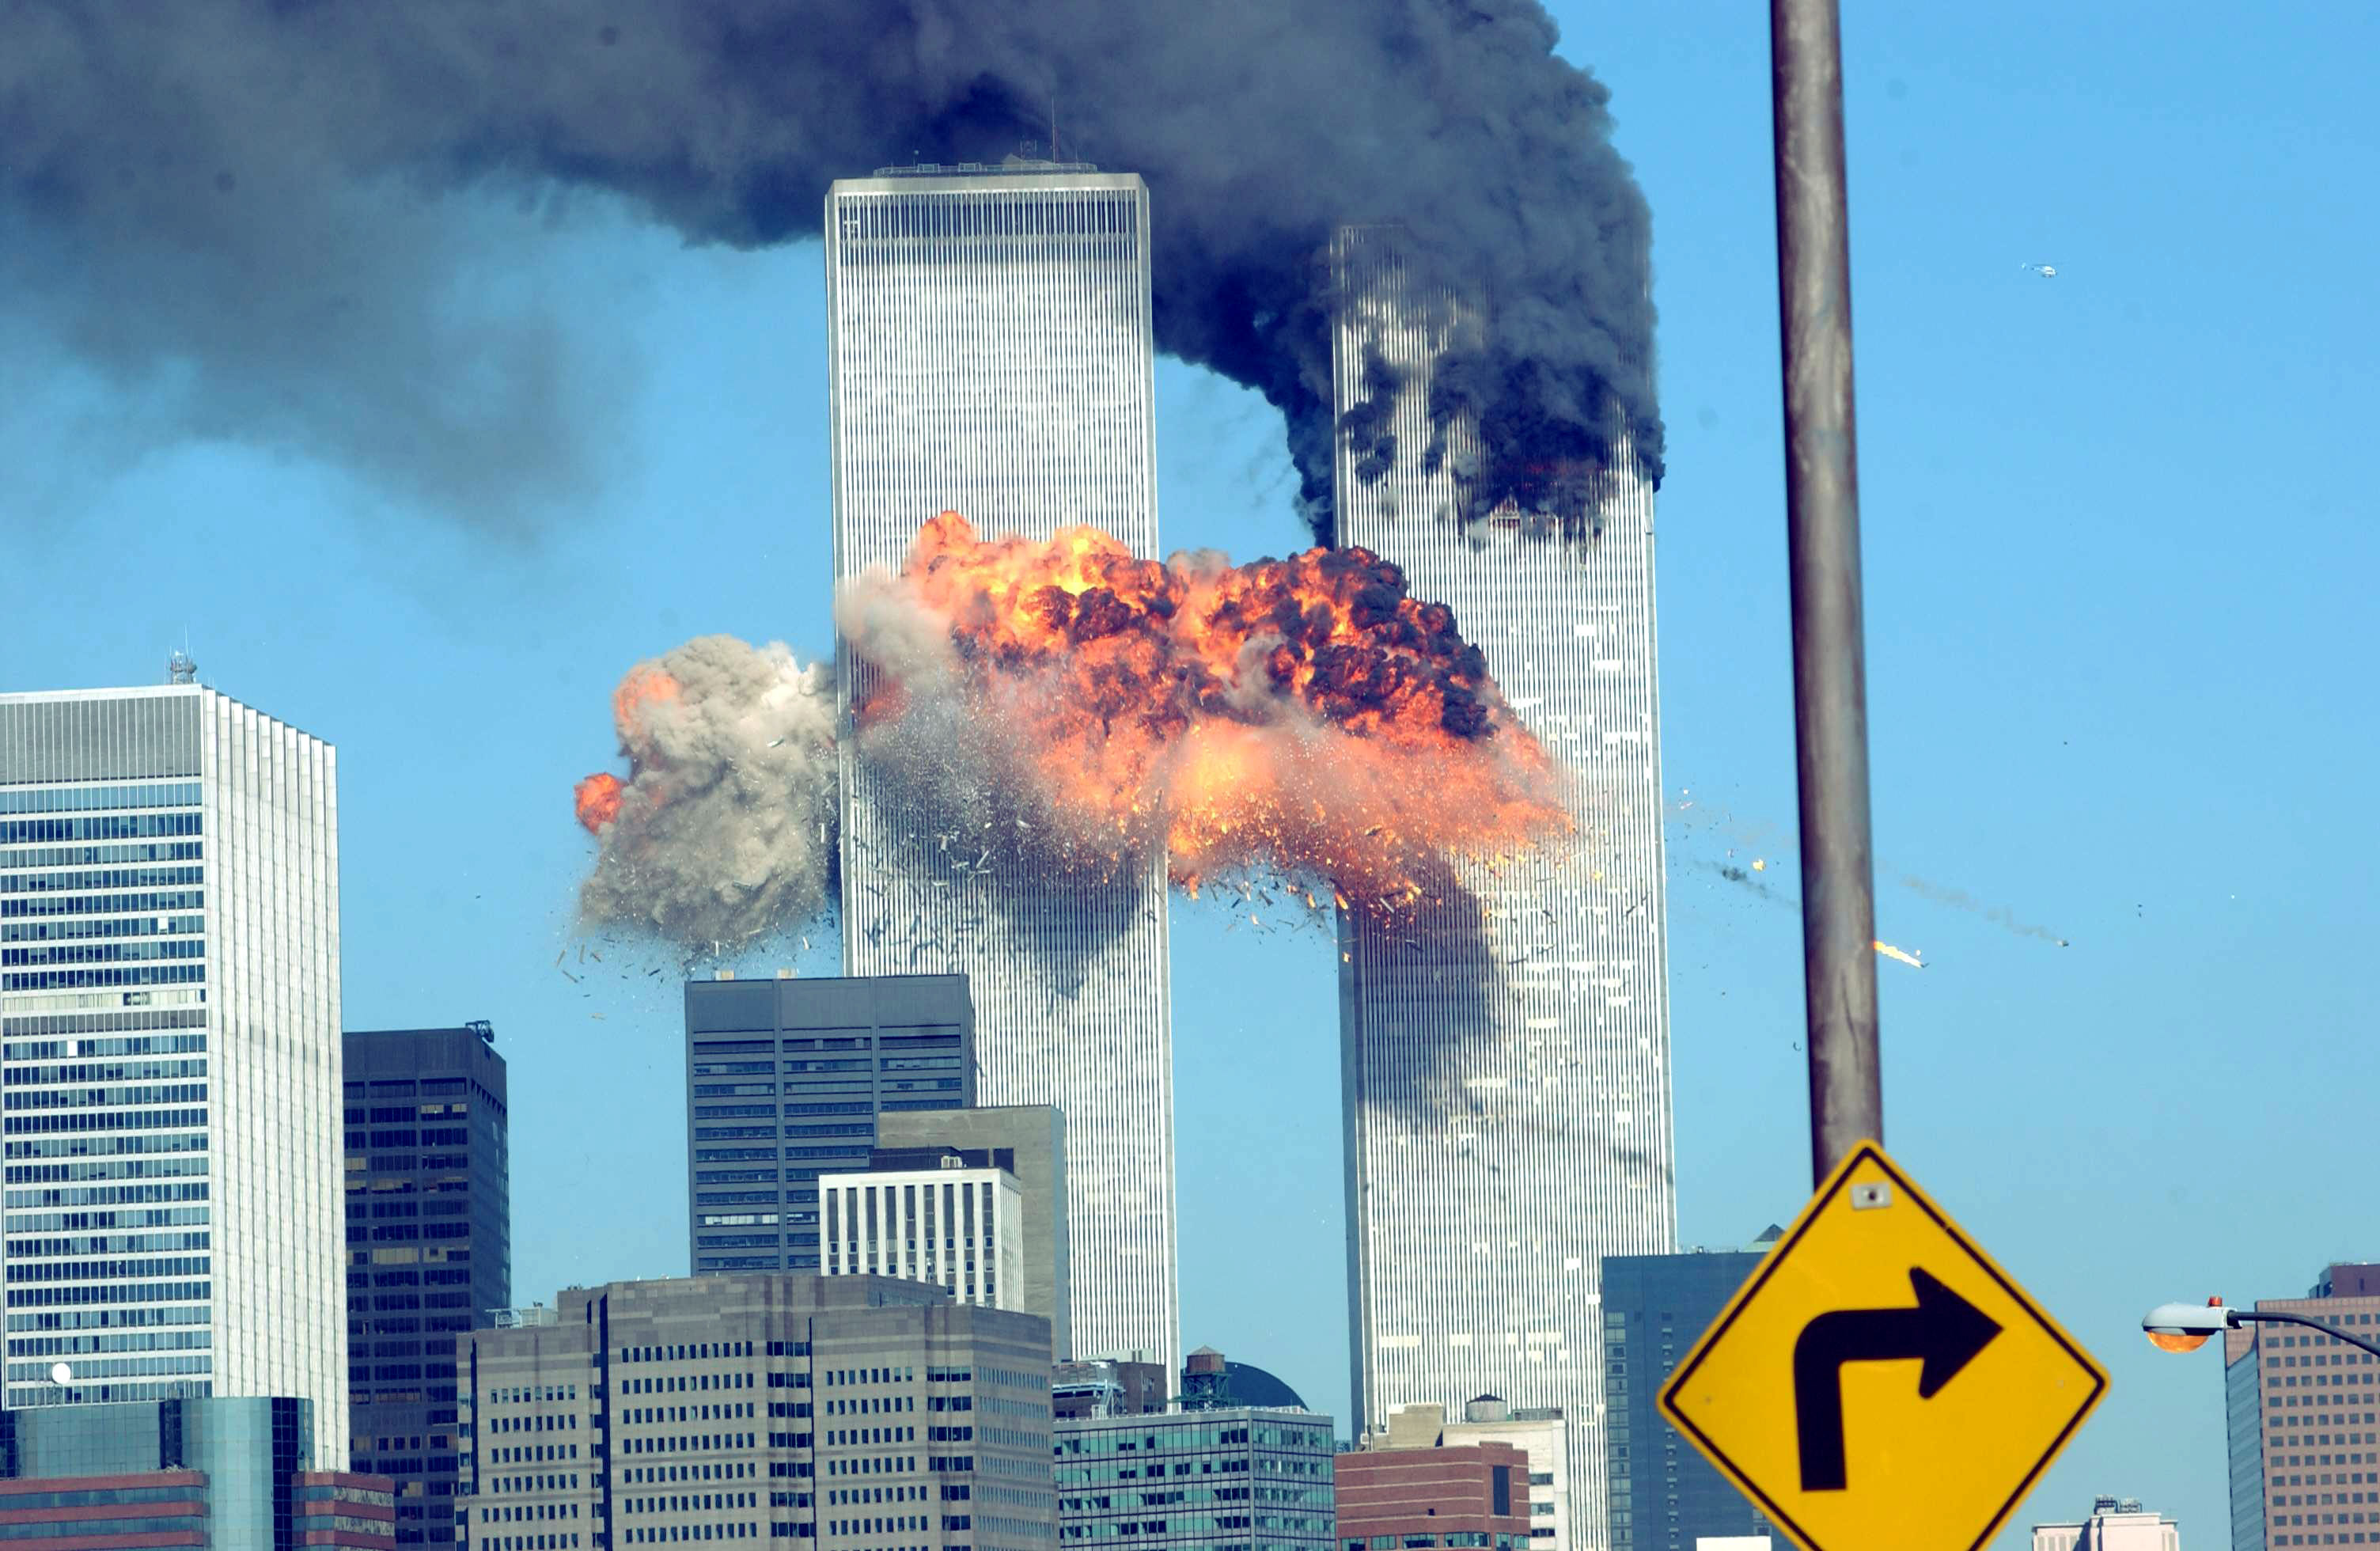 GettyImages 1161124 Secret Pages Showing Possible Saudi Ties To 9/11 To Be Released